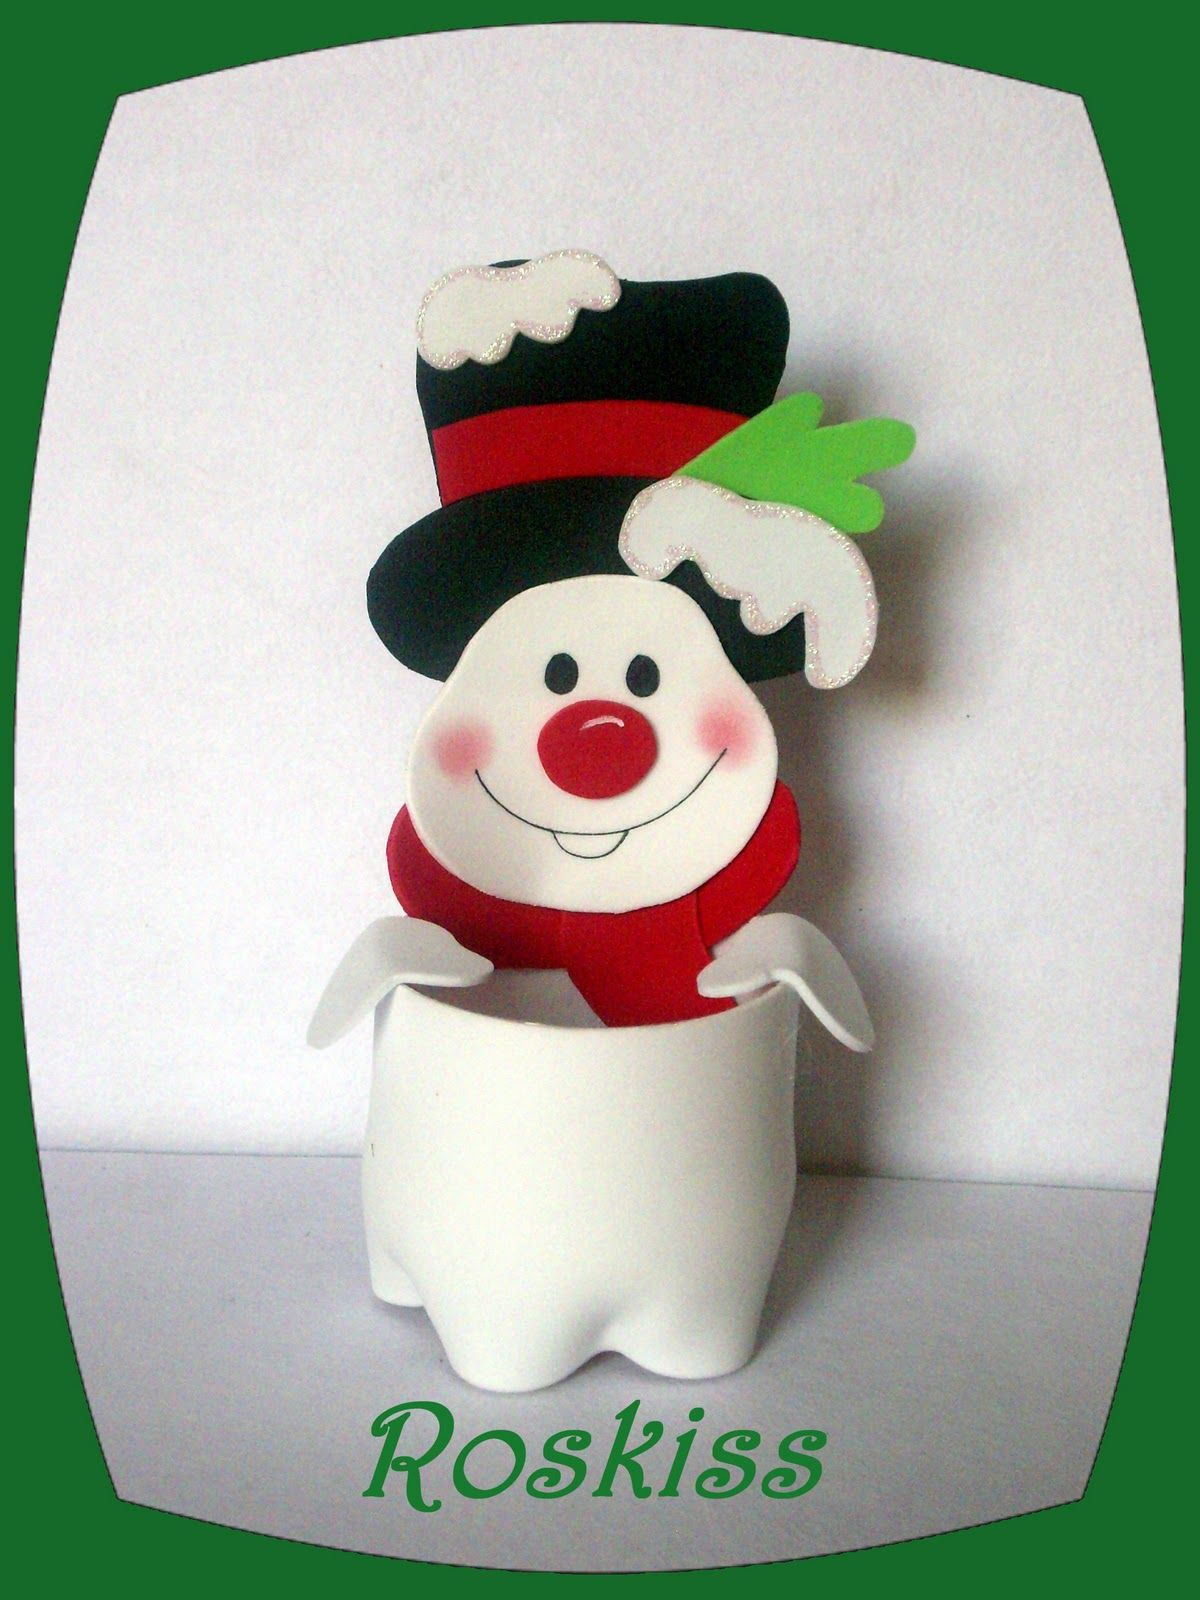 1000 Images About Ideas Para El Consultorio On Pinterest: Moldes De Little Pet En Foami Para Dulceros Snowman